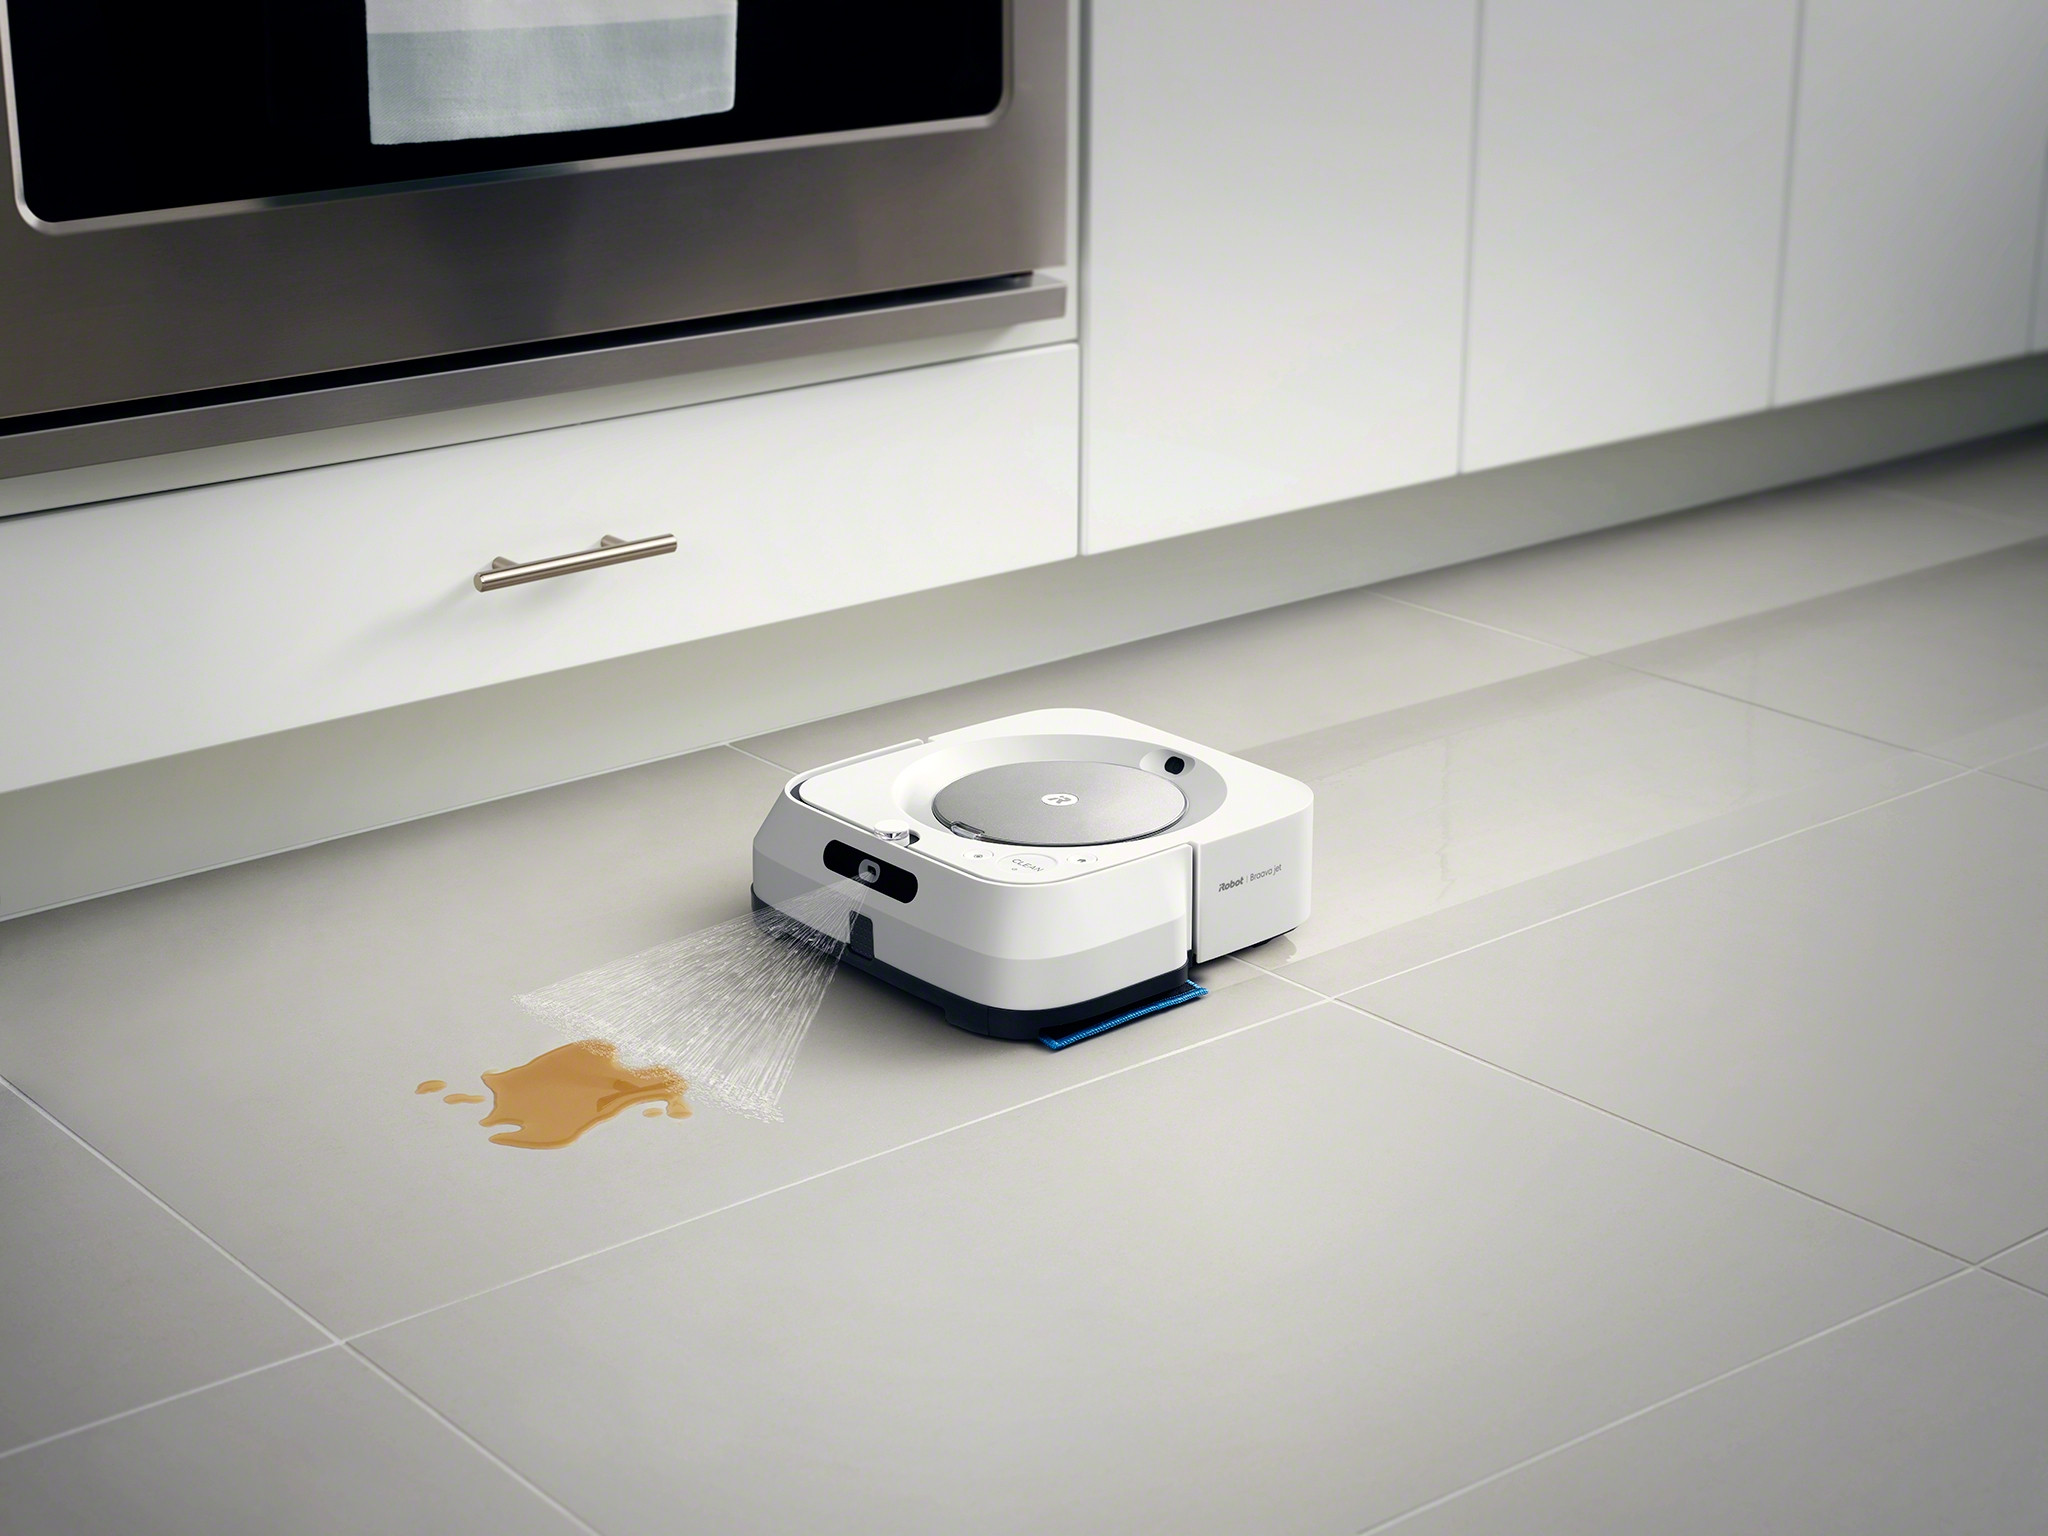 m6_Silver_Photo_InSitu_CleanTrail_StickyMess_Kitchen_Tile_Wet_Washable Wet Pad.jpg